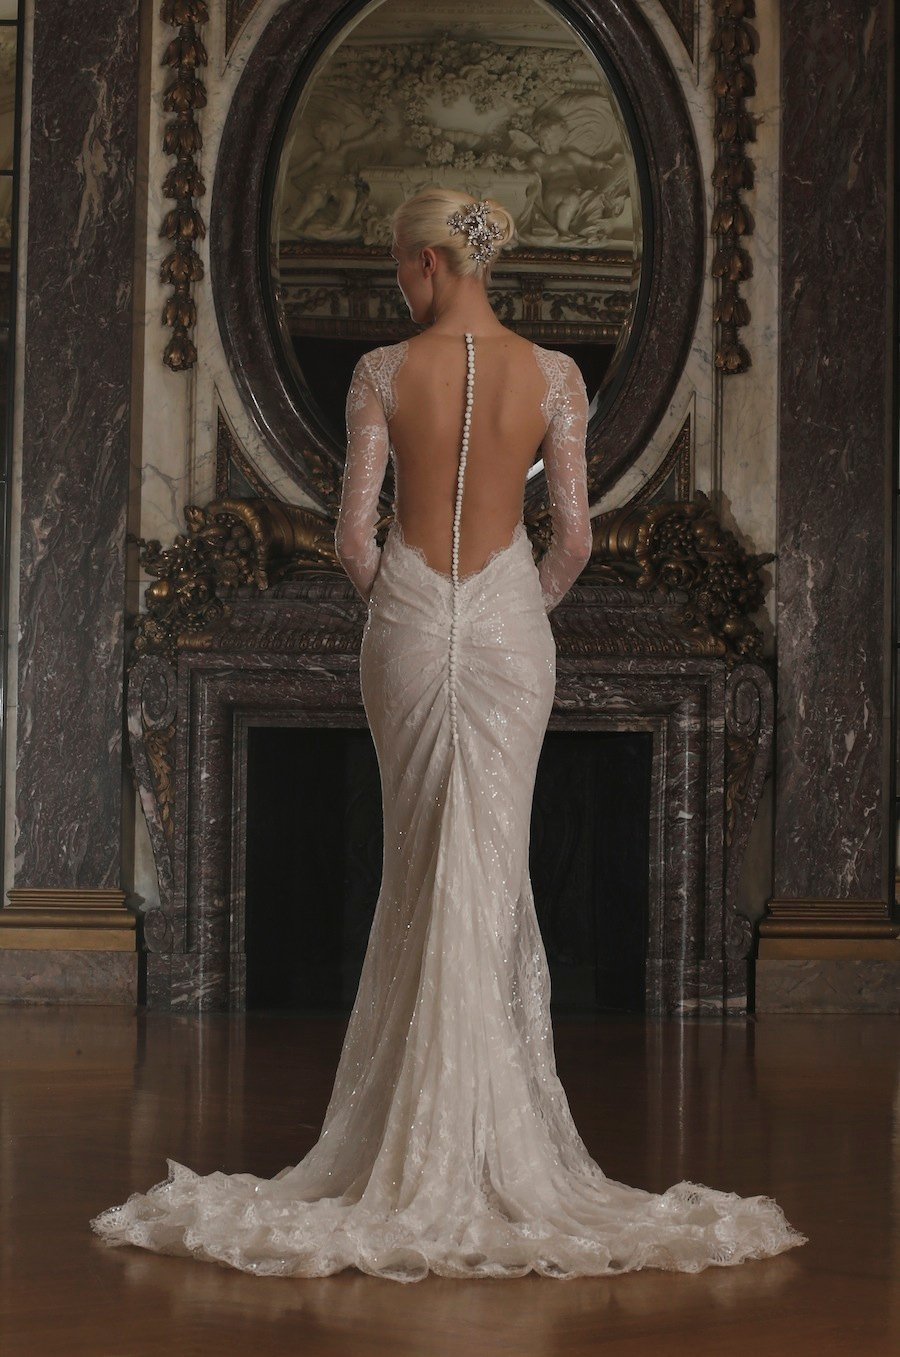 Watch Galia Lahav 2015 Wedding Dresses: Pearl Perfection, Sexy Sparkle and All That Jazz video